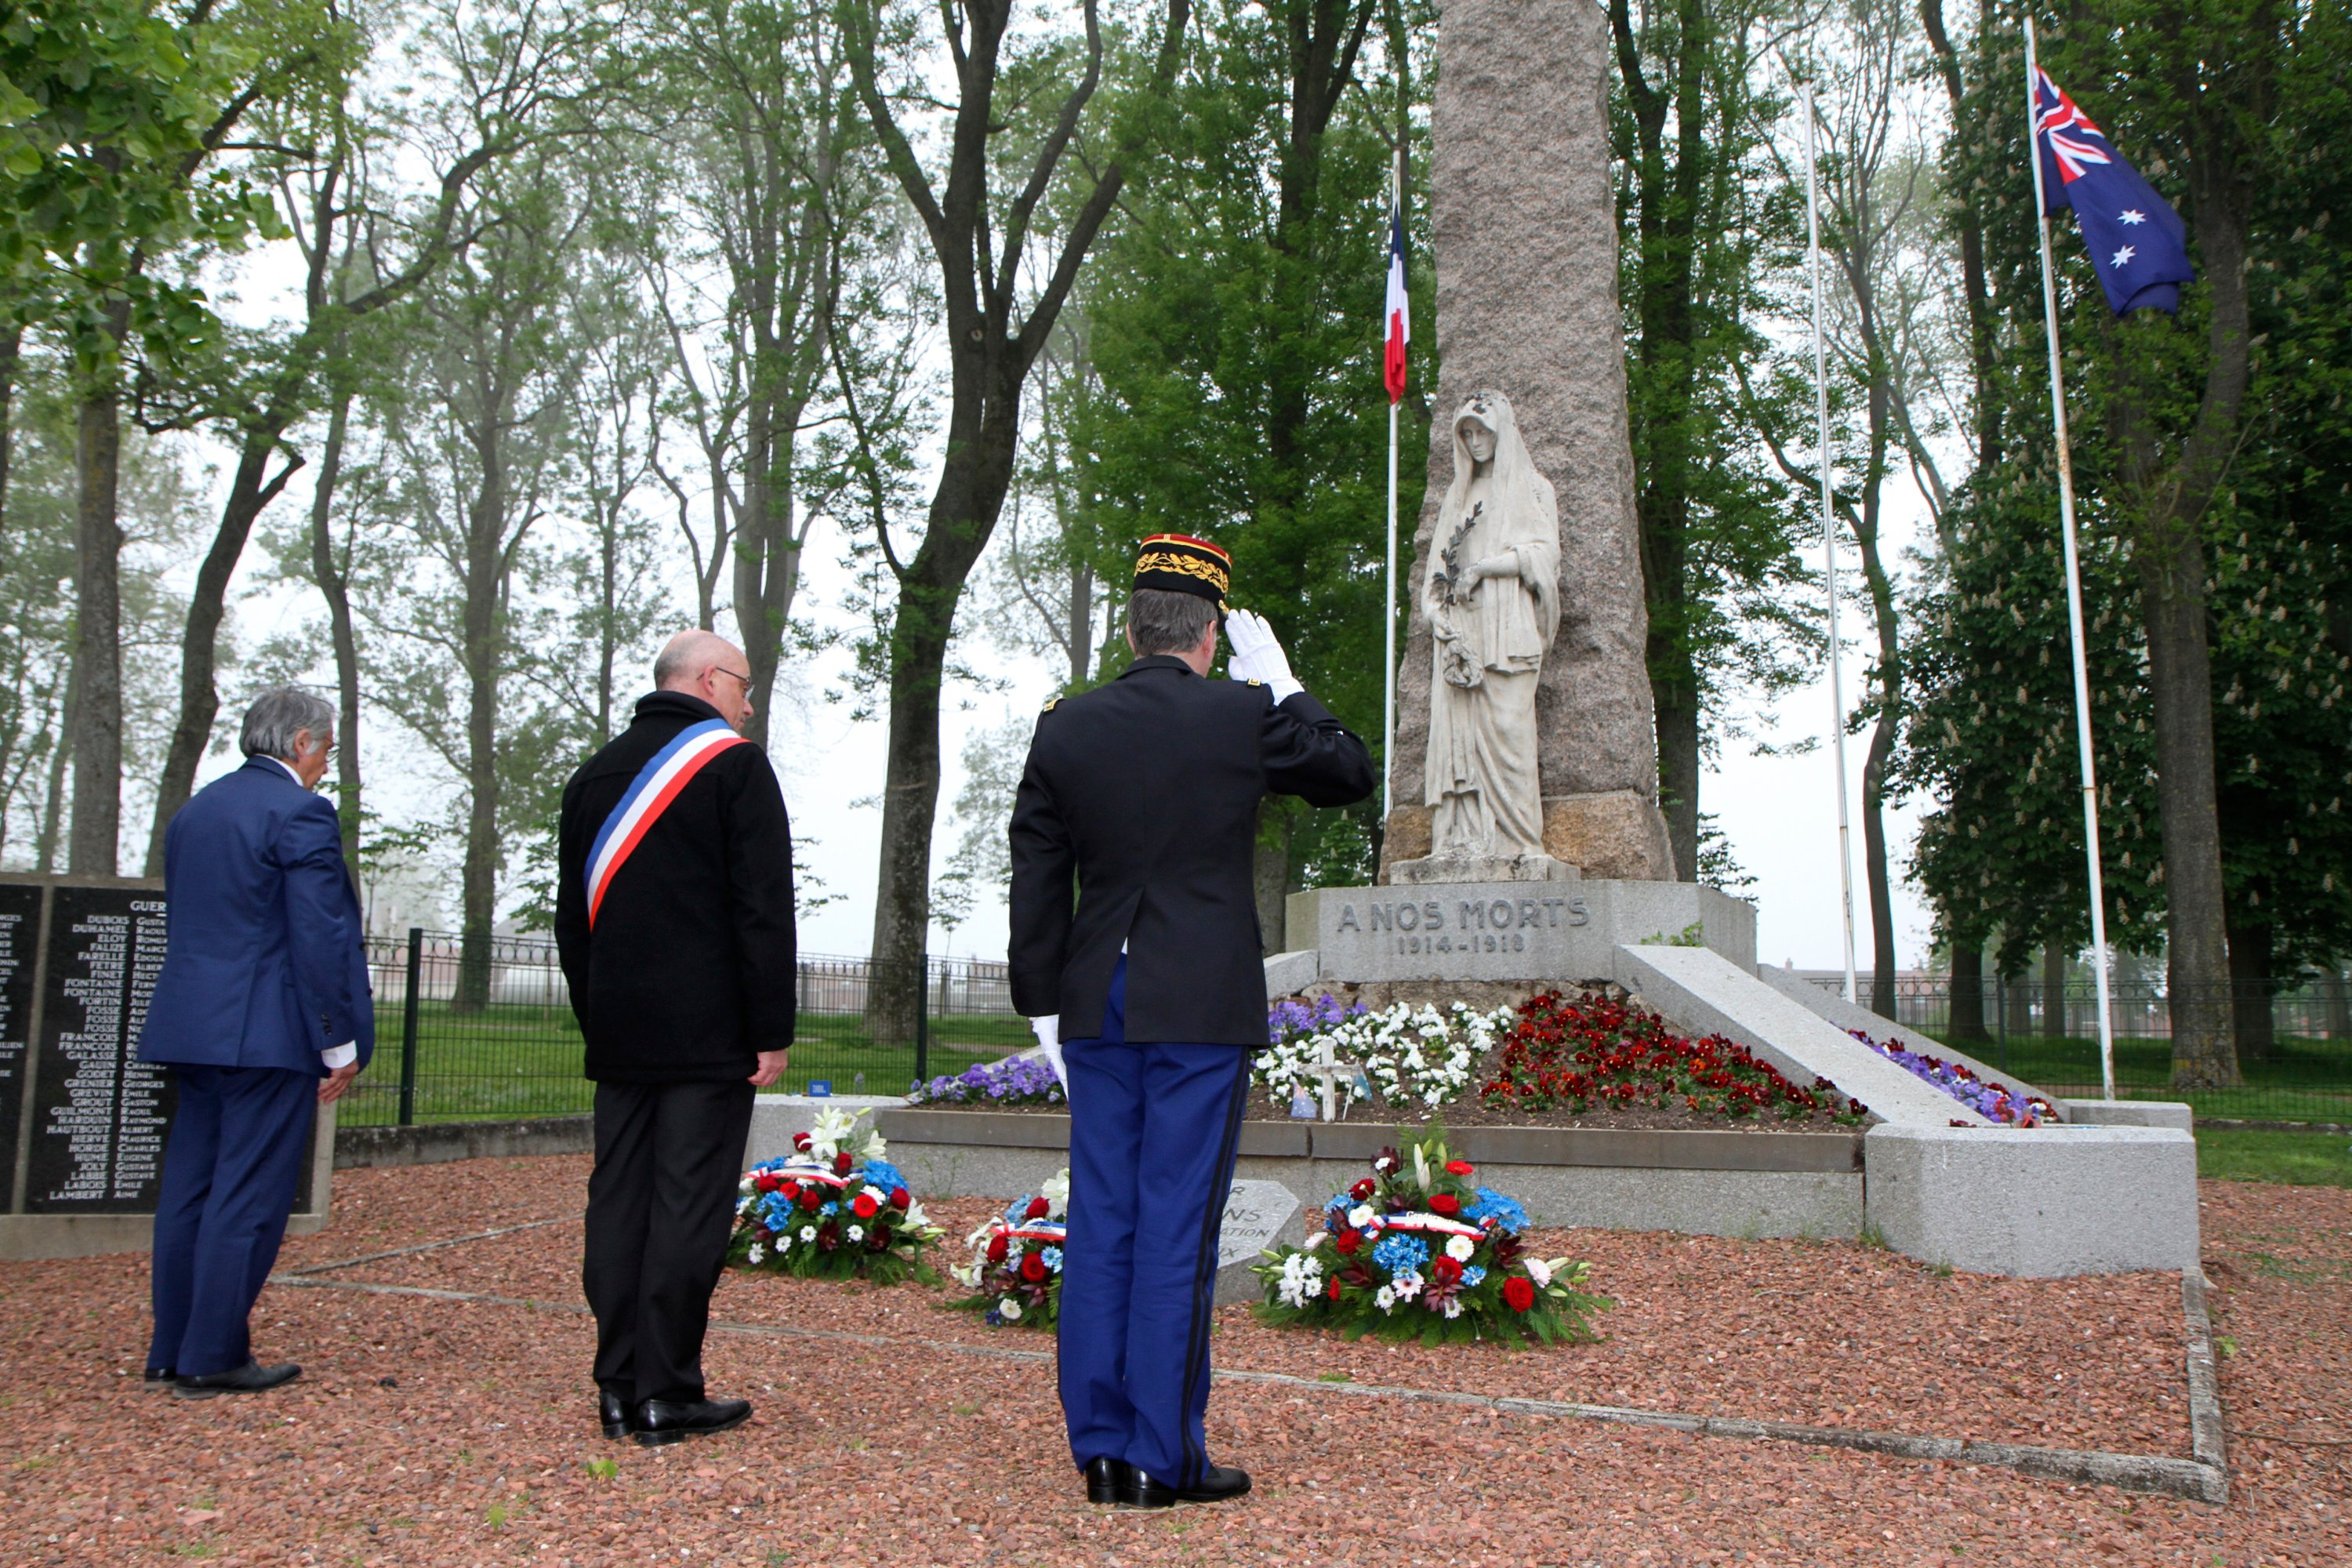 Deputy Mayor Benoit Decottegnie (C) and other French officials lay a wreath of flower at the monument to victims of World War I to mark Anzac Day in Villers-Brettoneux, northern France, Saturday April 25, 2020. (AP Photo)